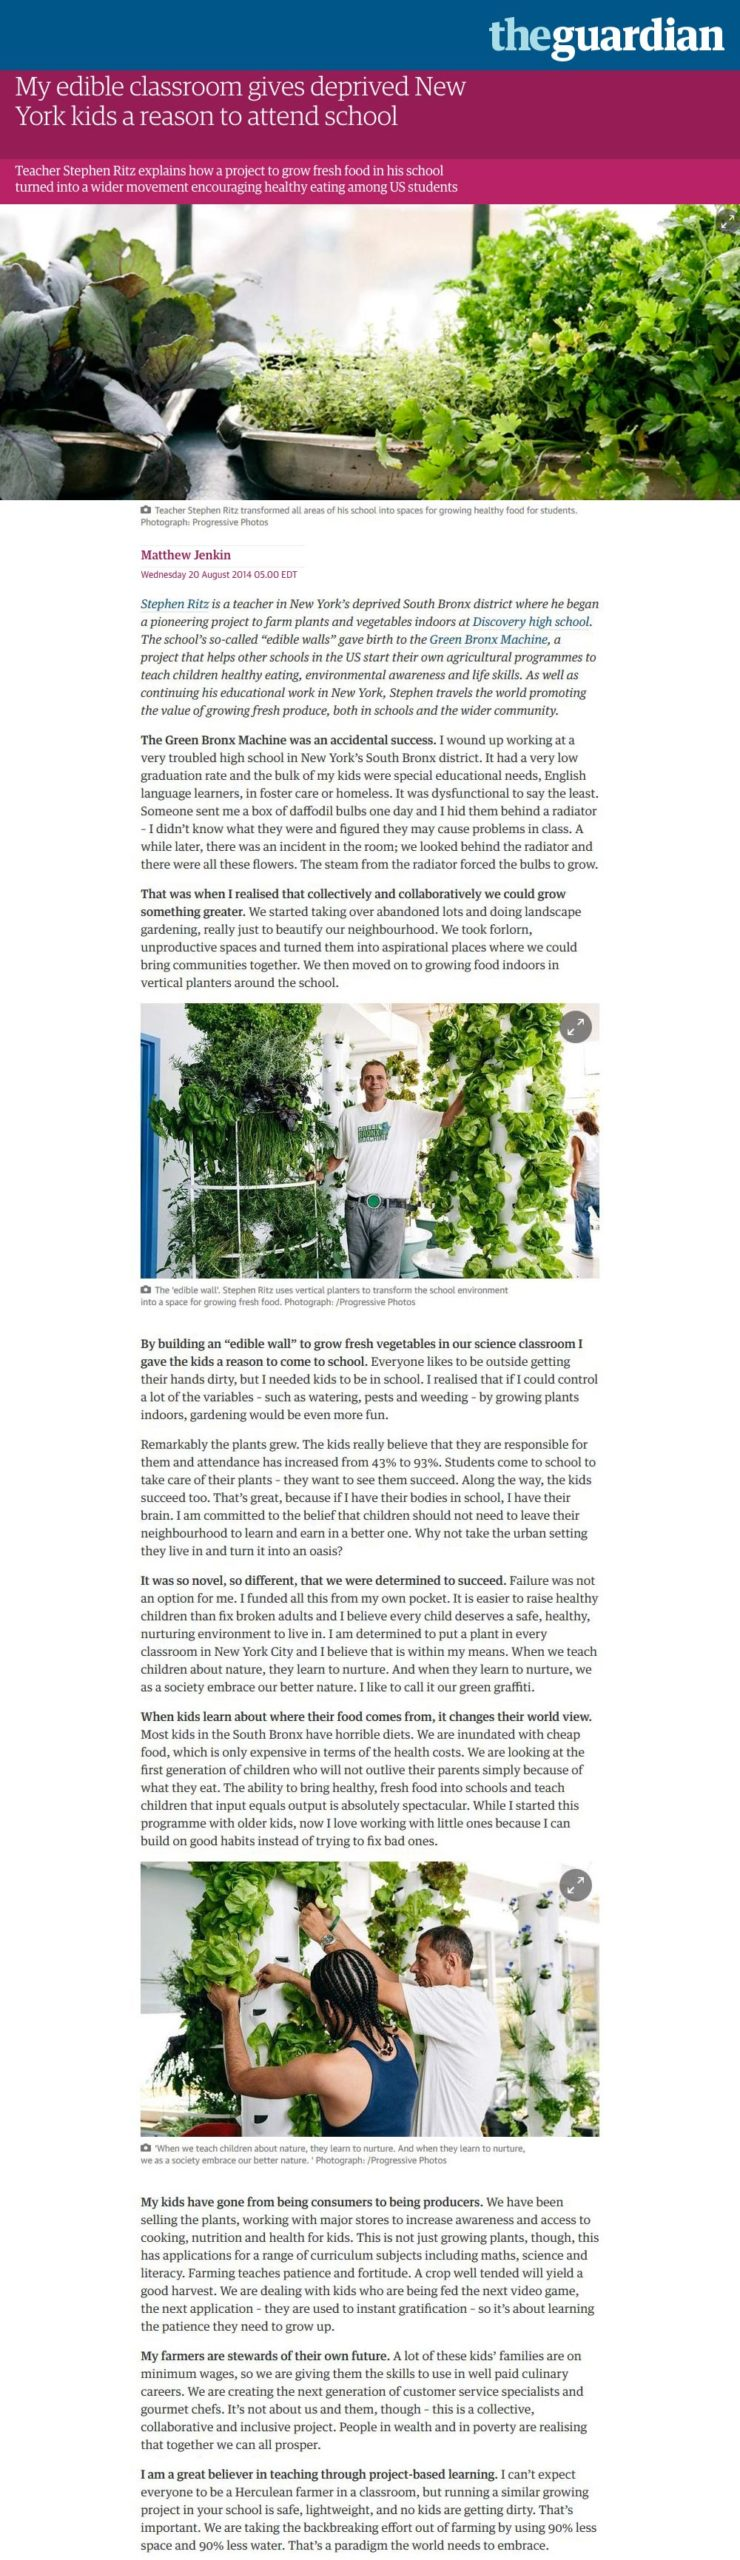 2014-08-20-the-guardian-my-edible-classroom-gives-deprived-new-york-kids-a-reason-to-attend-school